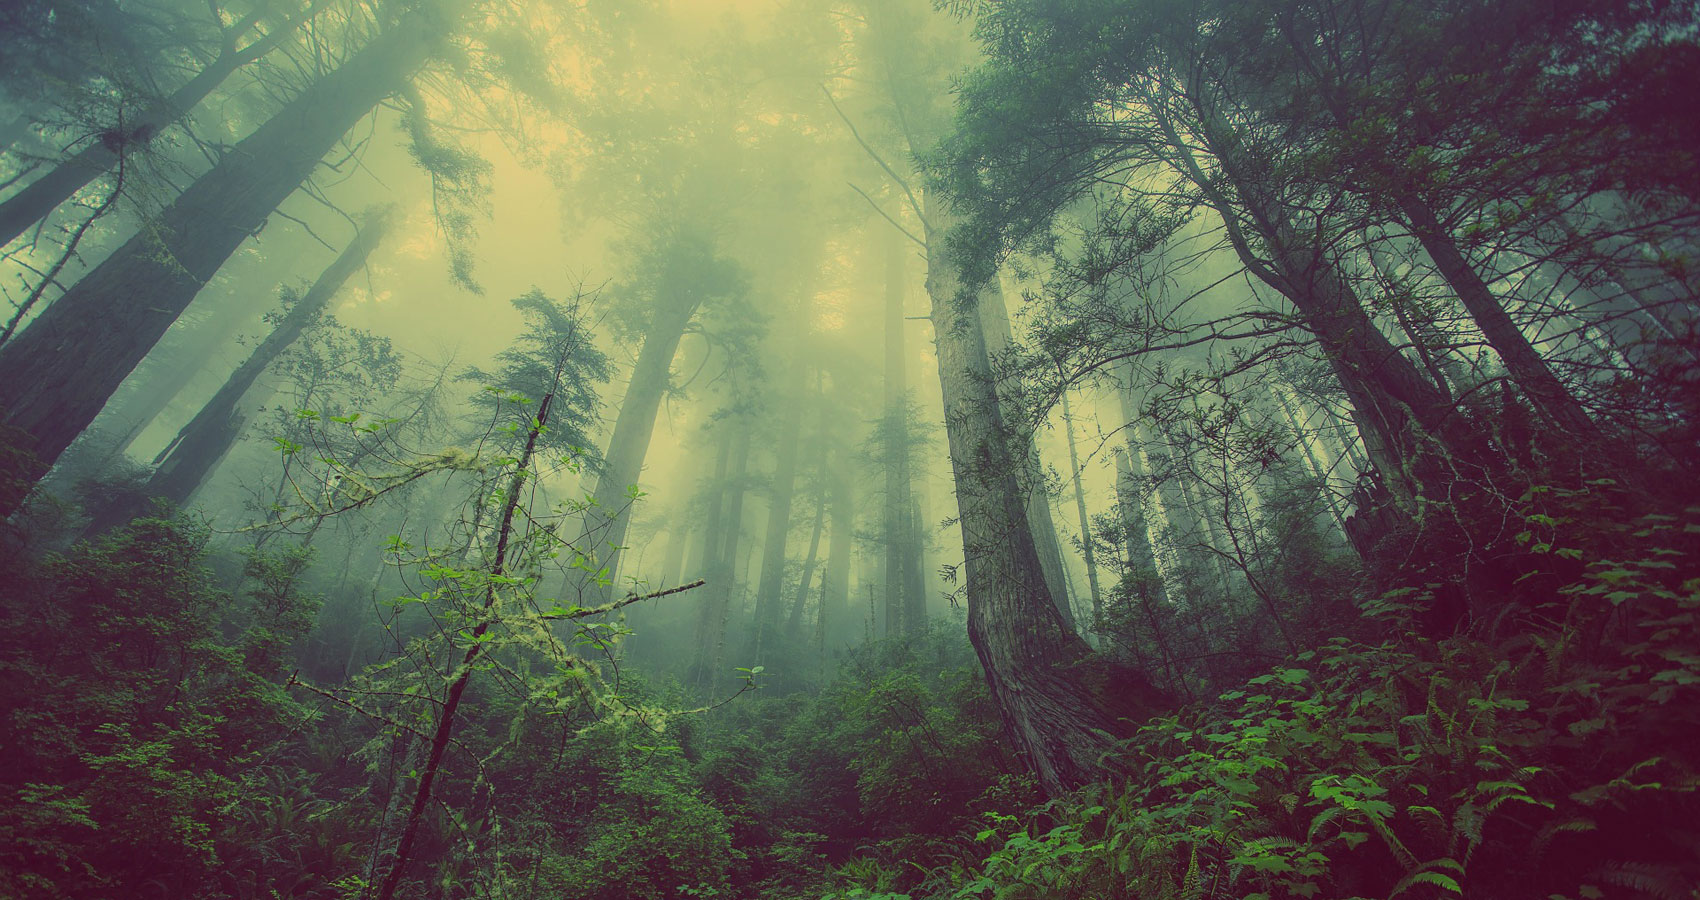 Lifting Fog written by Jacob Damstra at Spillwords.com